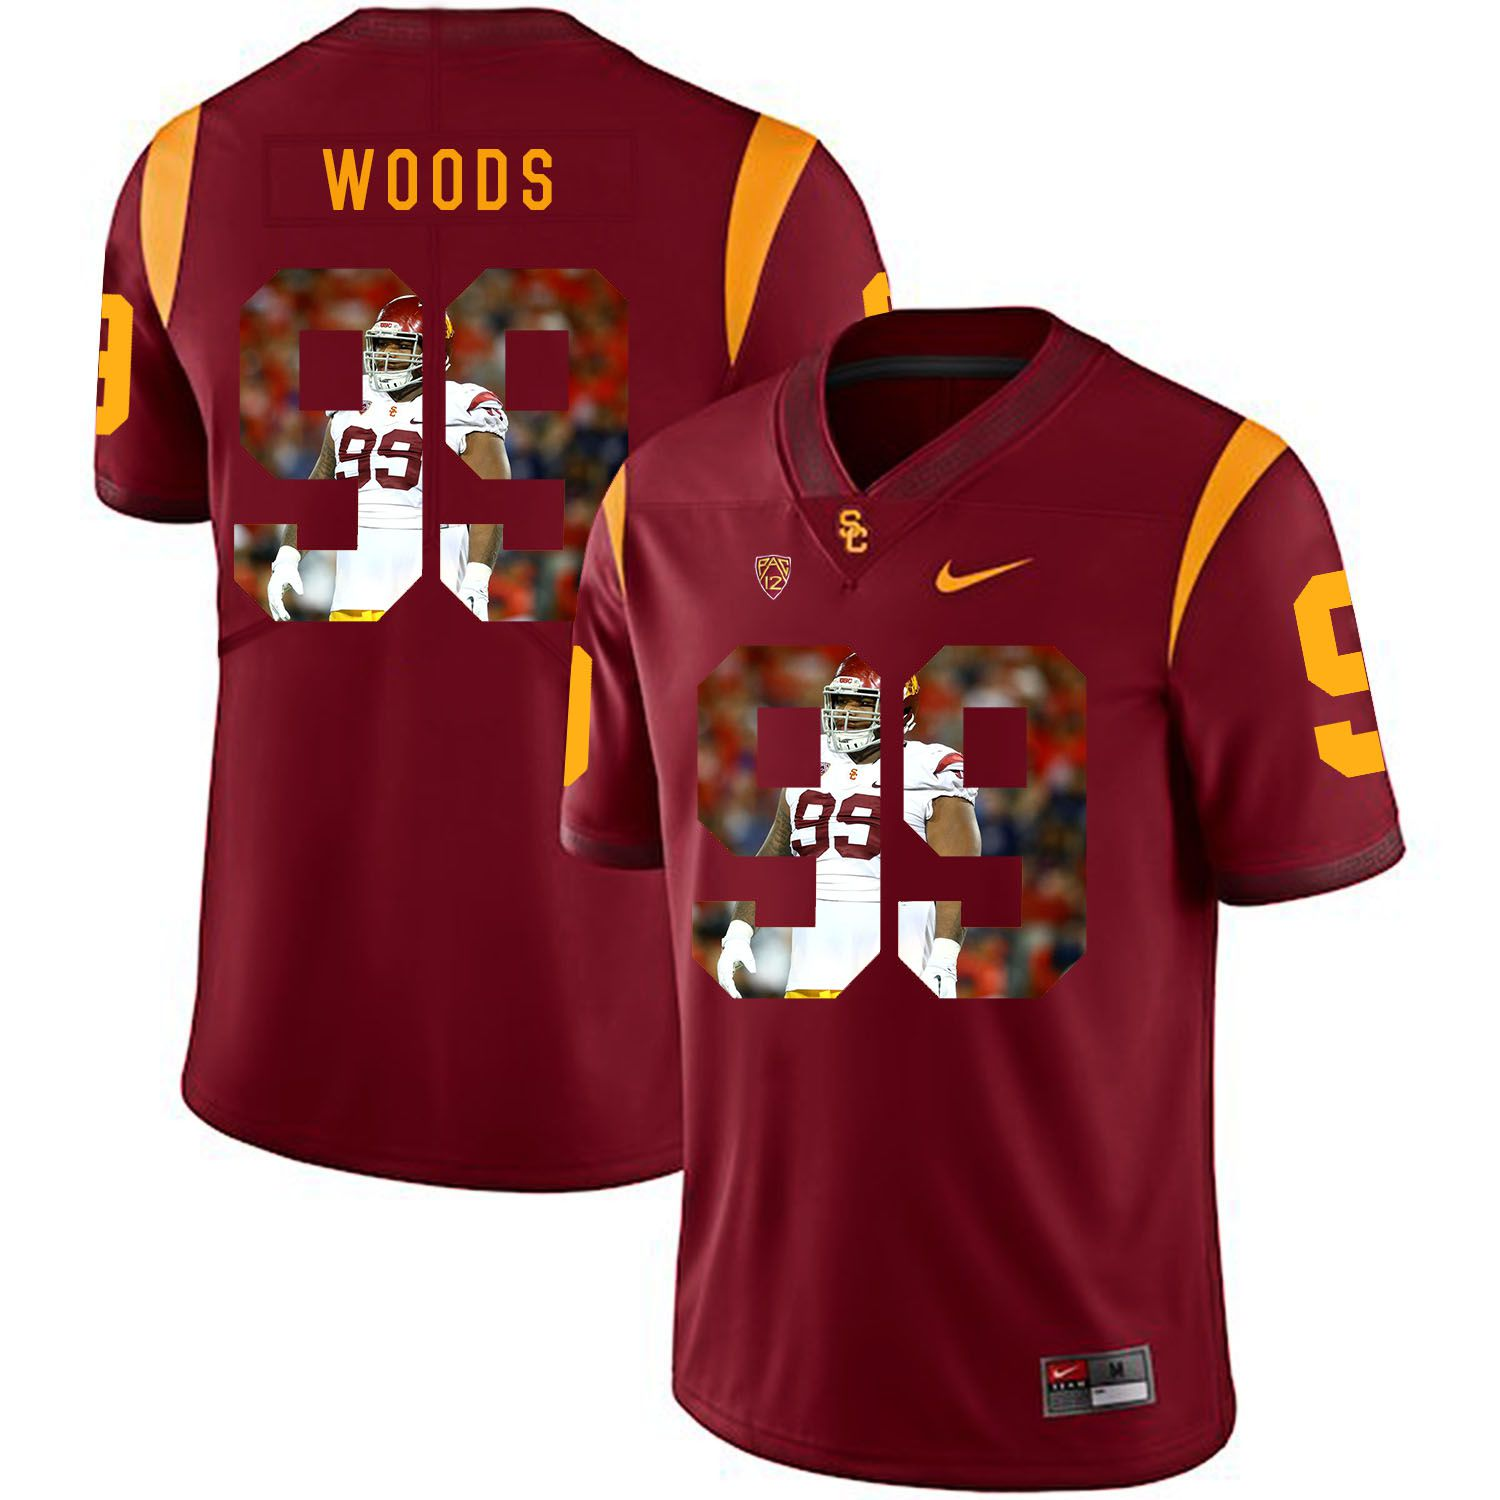 Men USC Trojans 99 Woods Red Fashion Edition Customized NCAA Jerseys